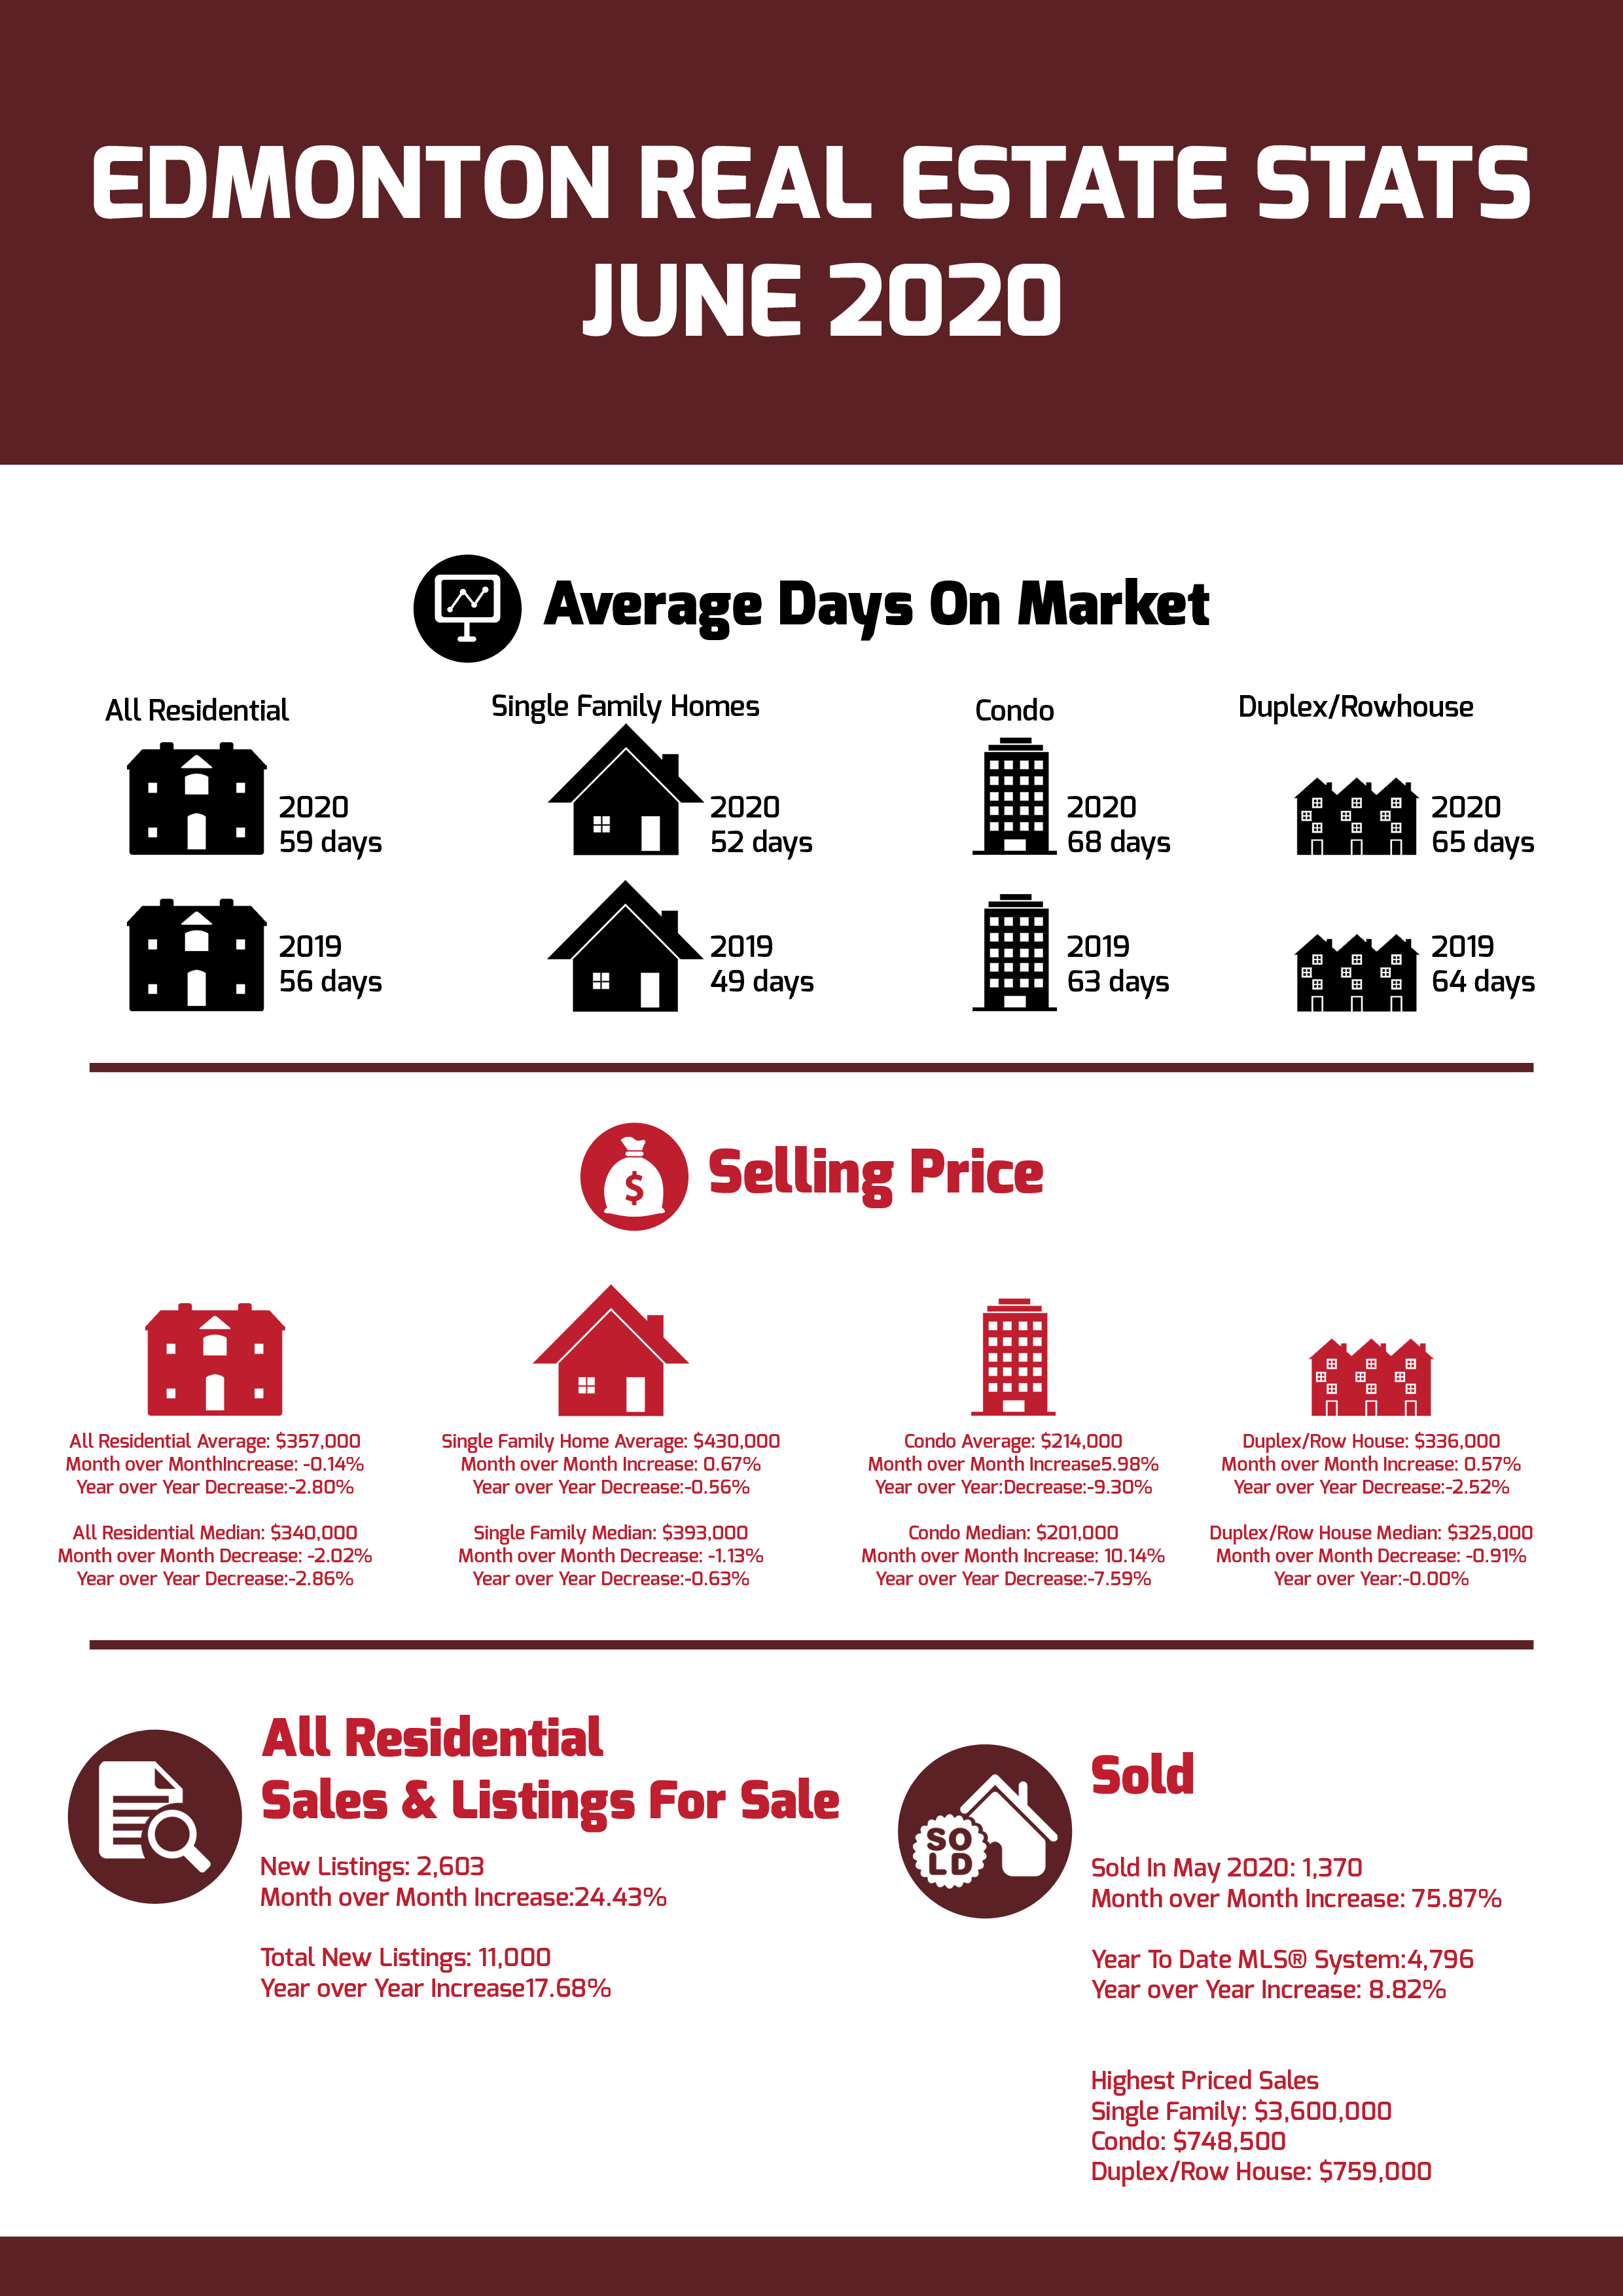 Edmonton Real Estate Stats June 2020